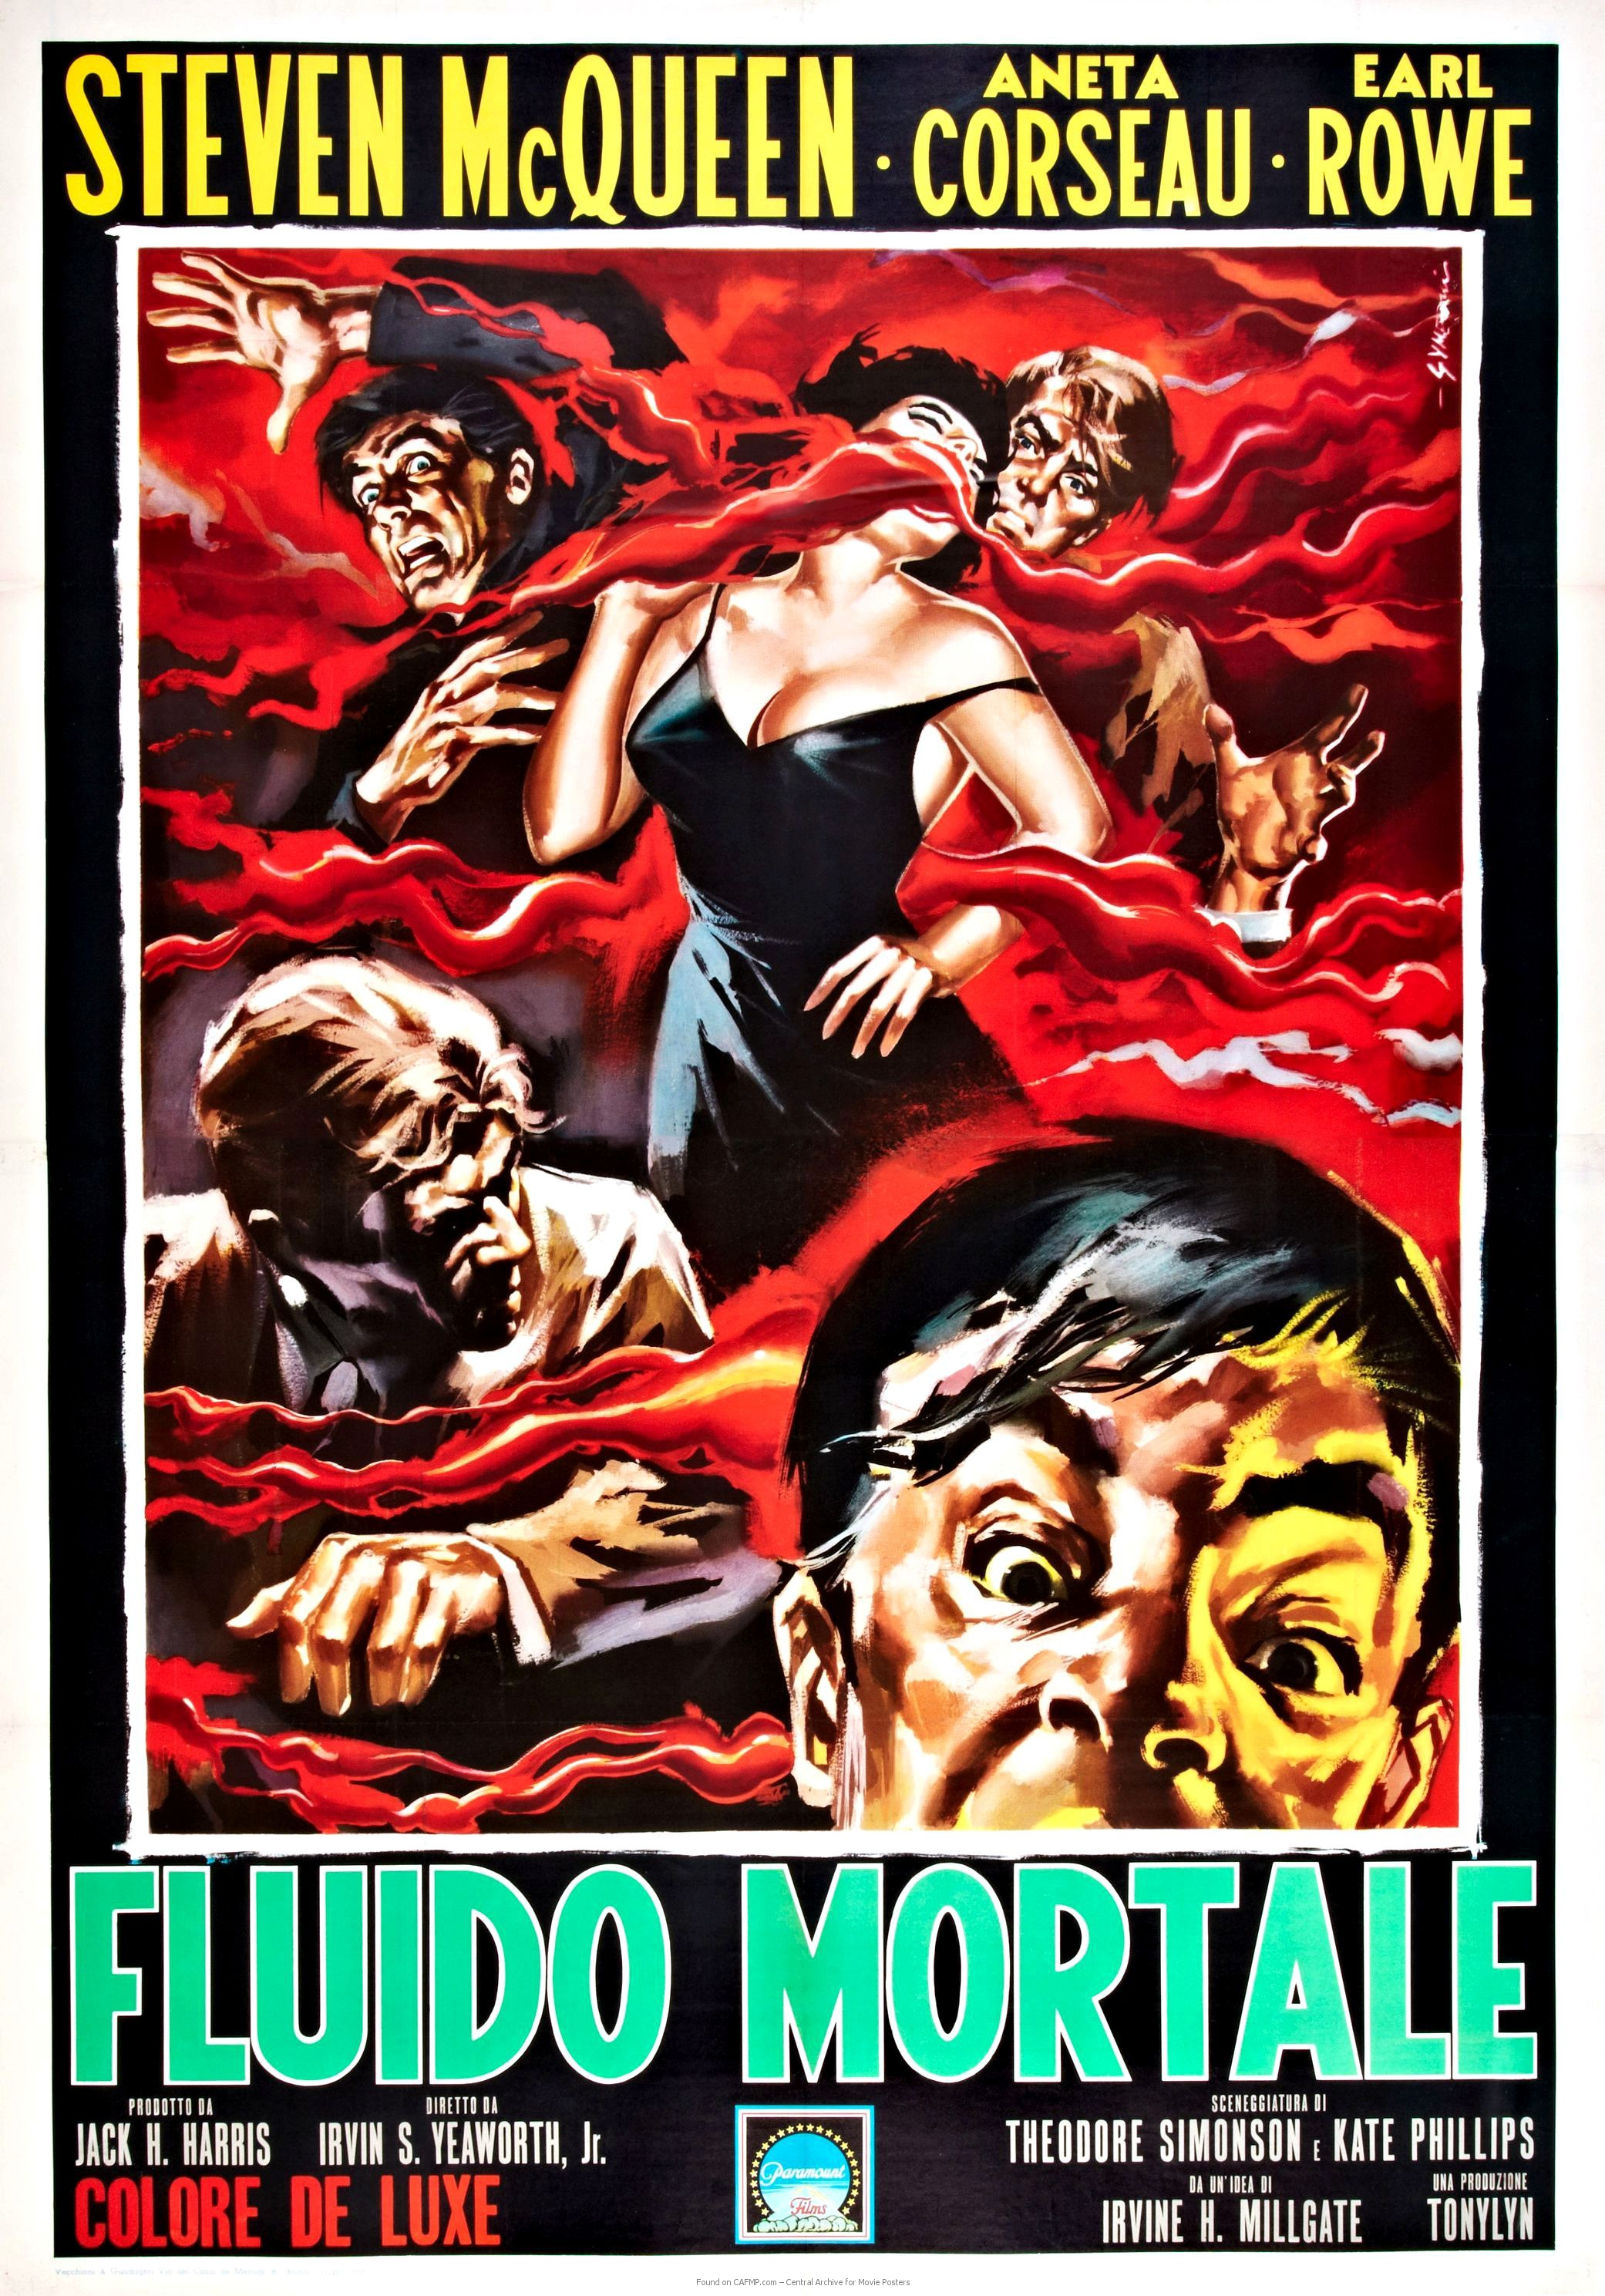 movie poster 187fluido mortale171 on cafmp